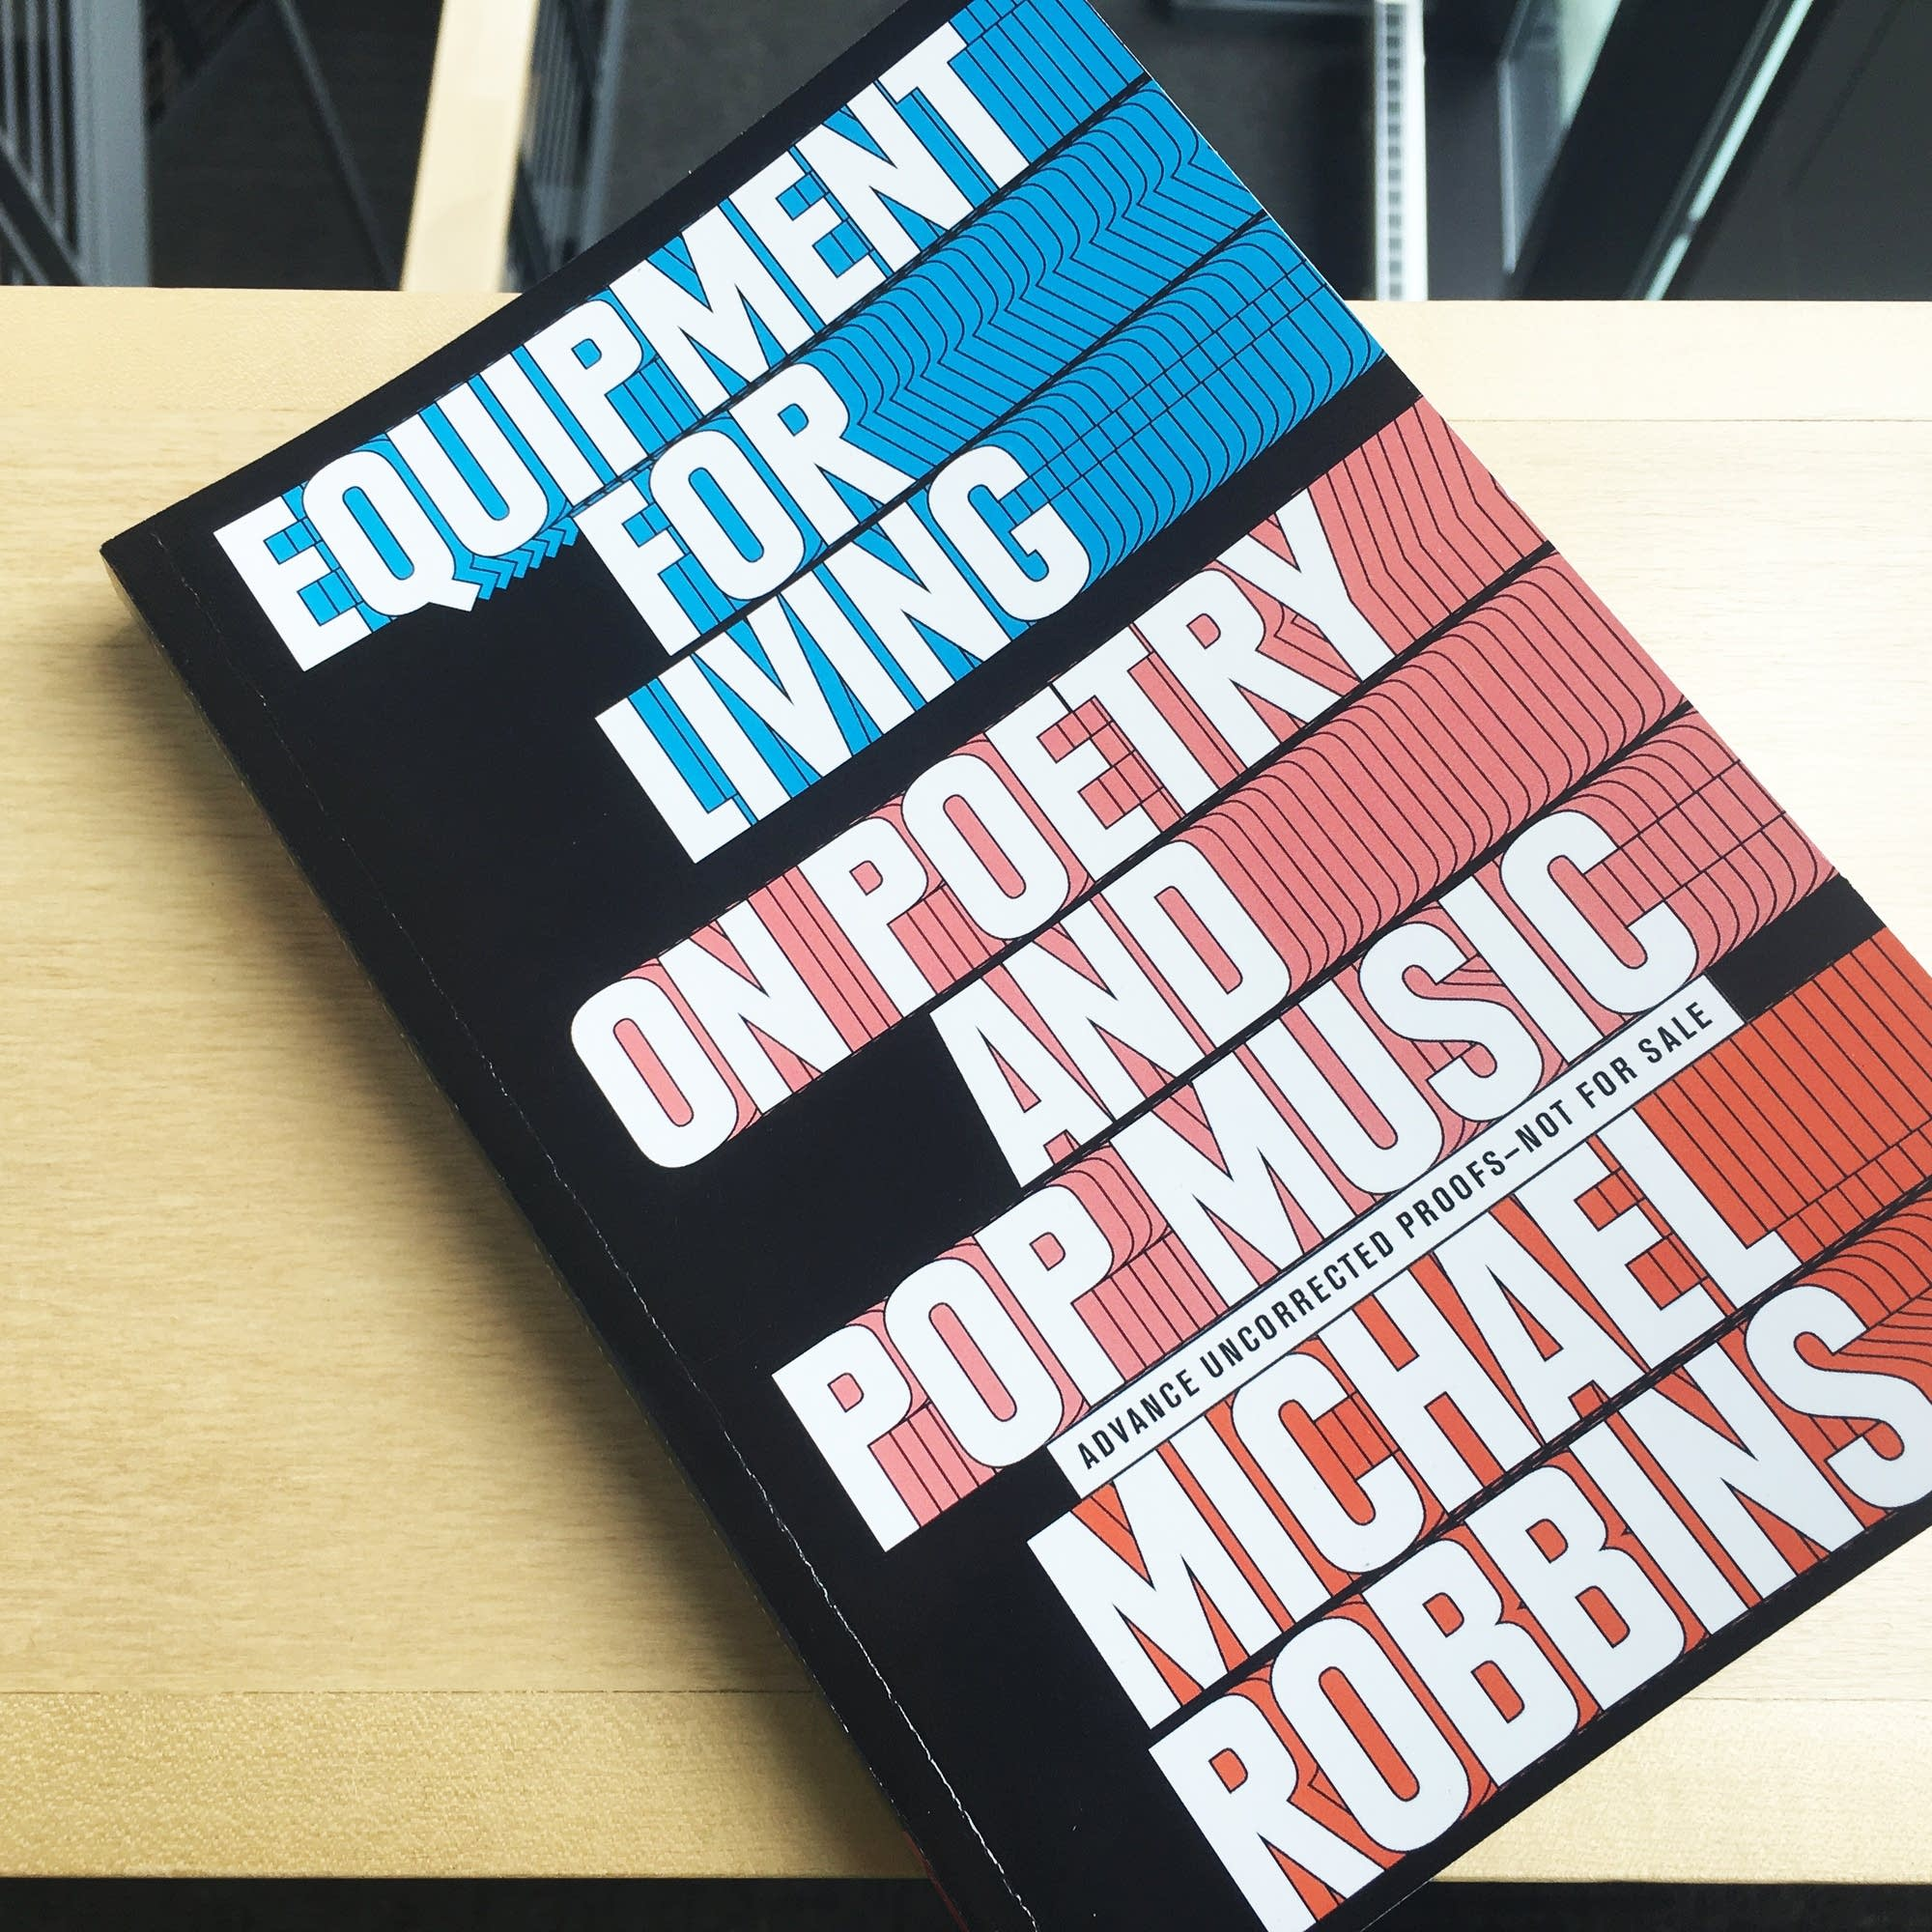 Michael Robbins's 'Equipment for Living'